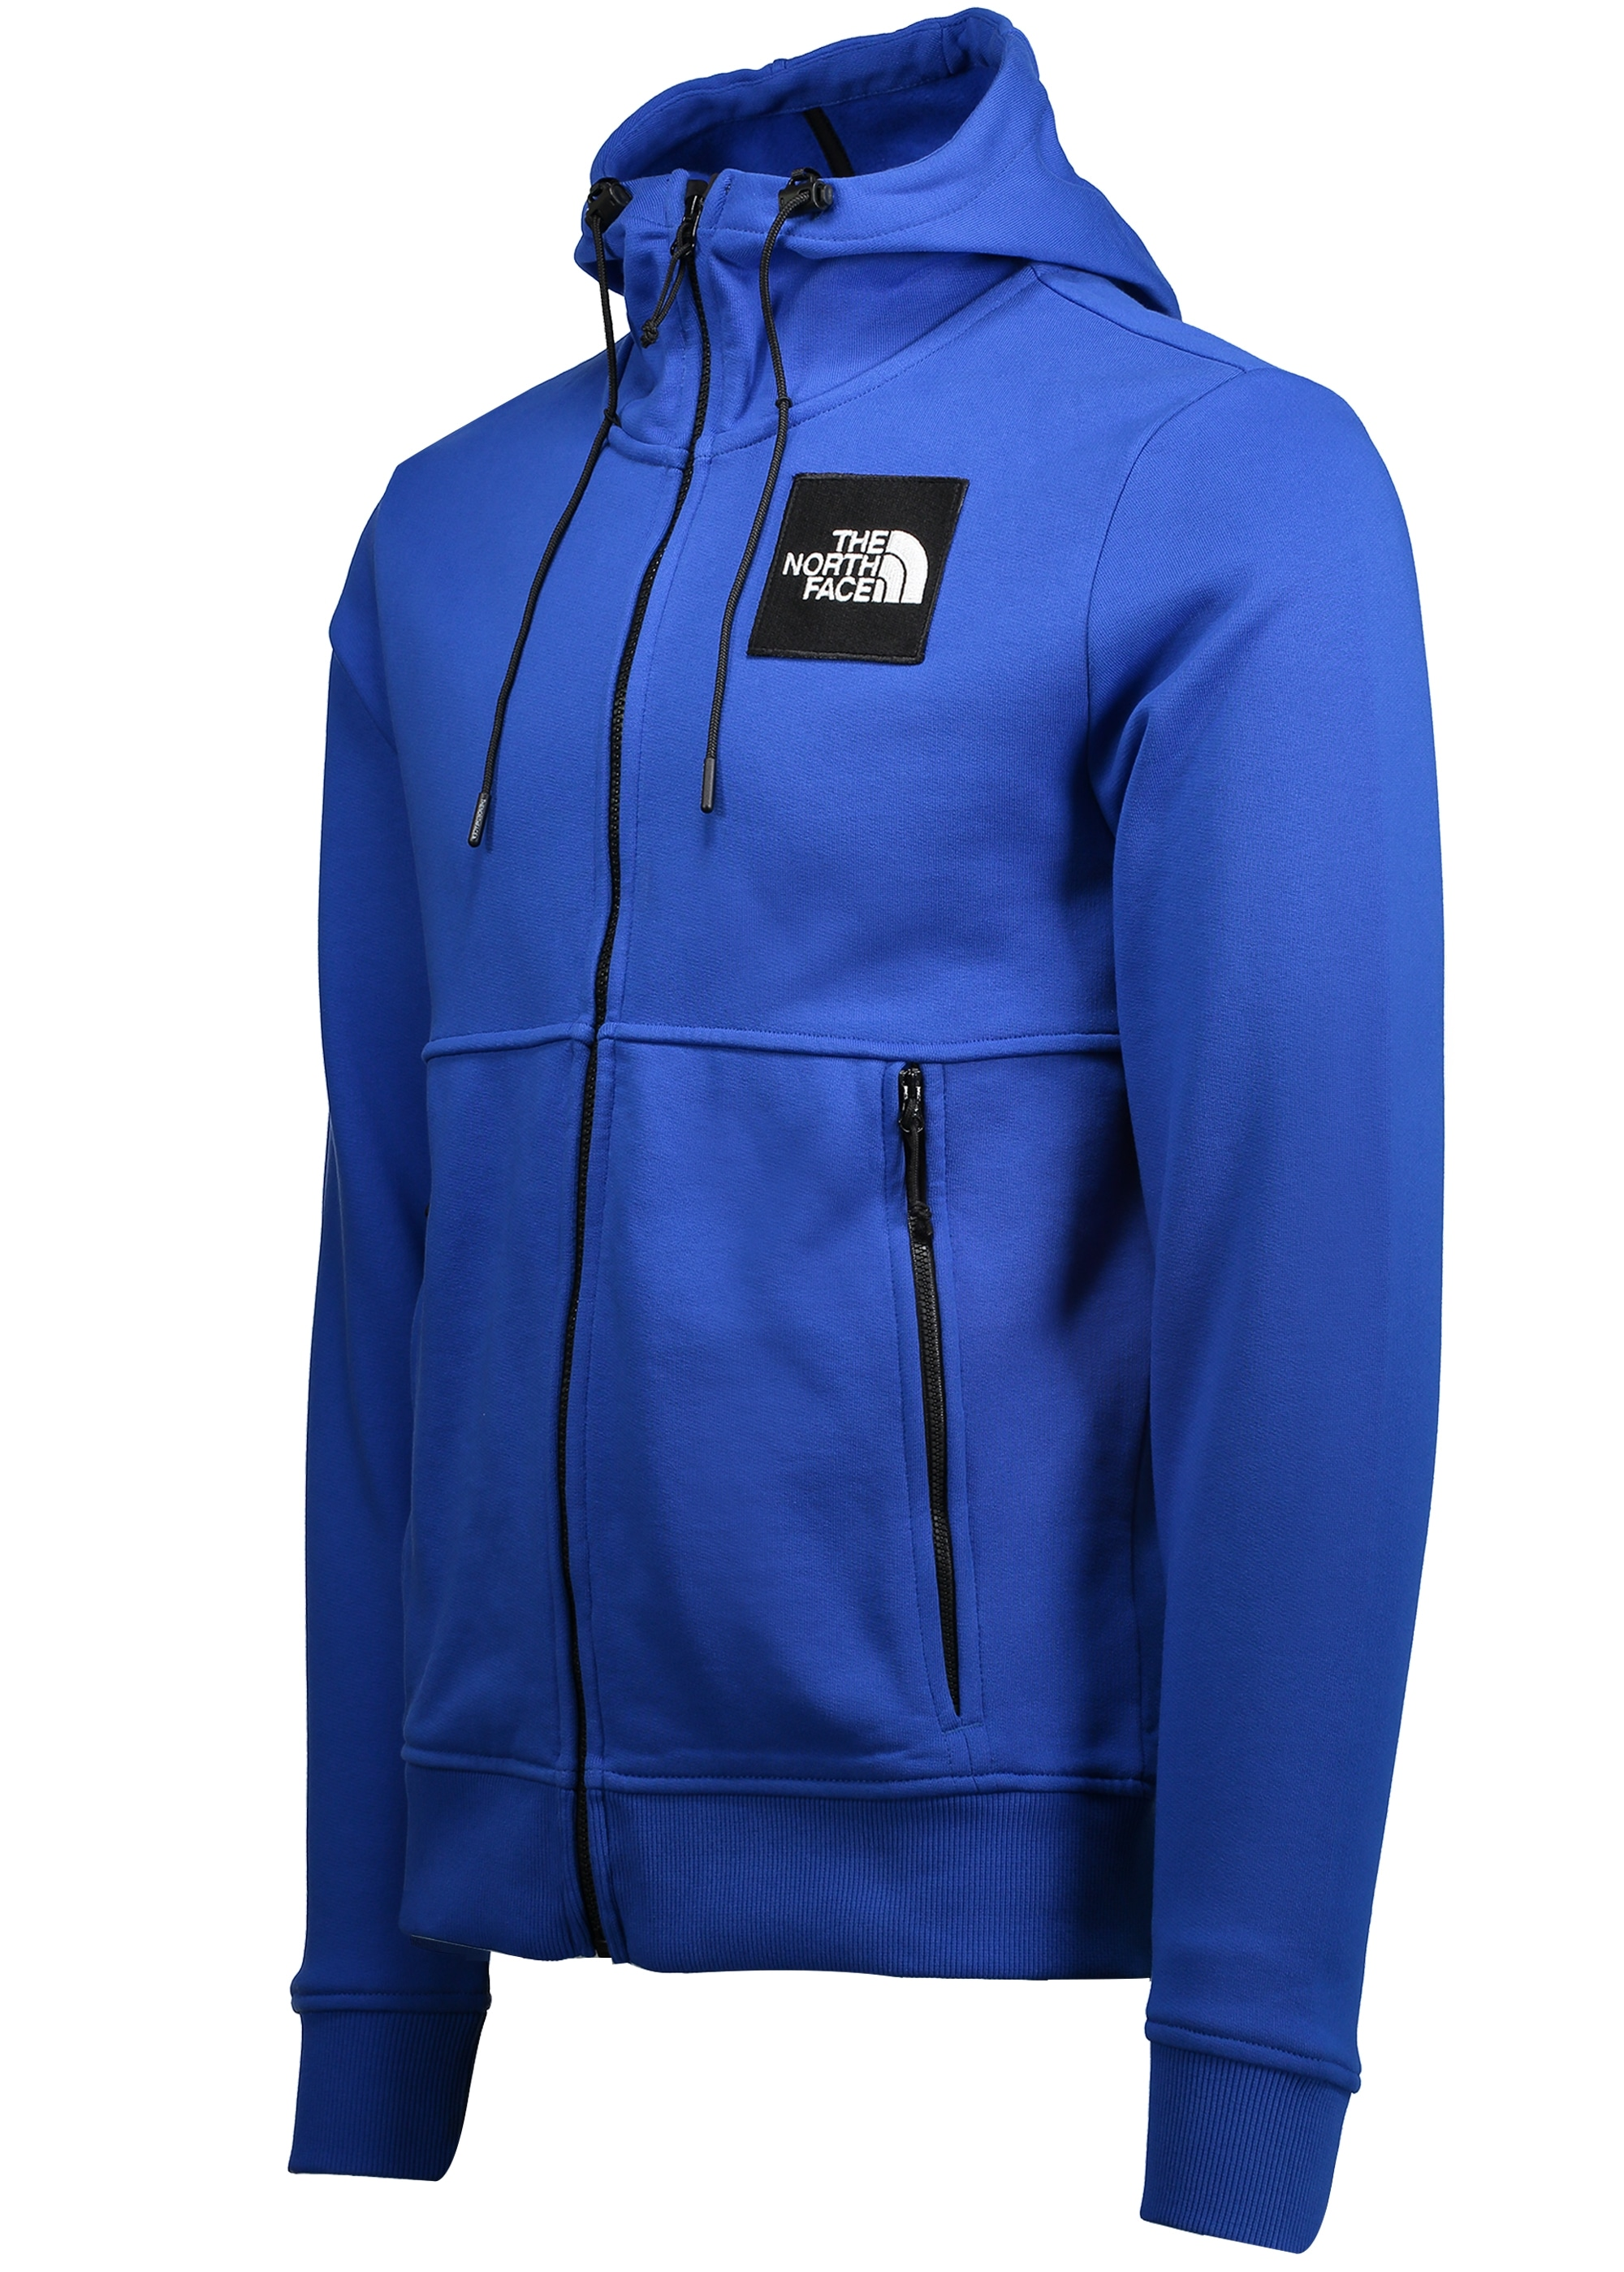 f22445350a4 The North Face Fine Full Zip Hoodie - Cobalt Blue - Hoodies from ...